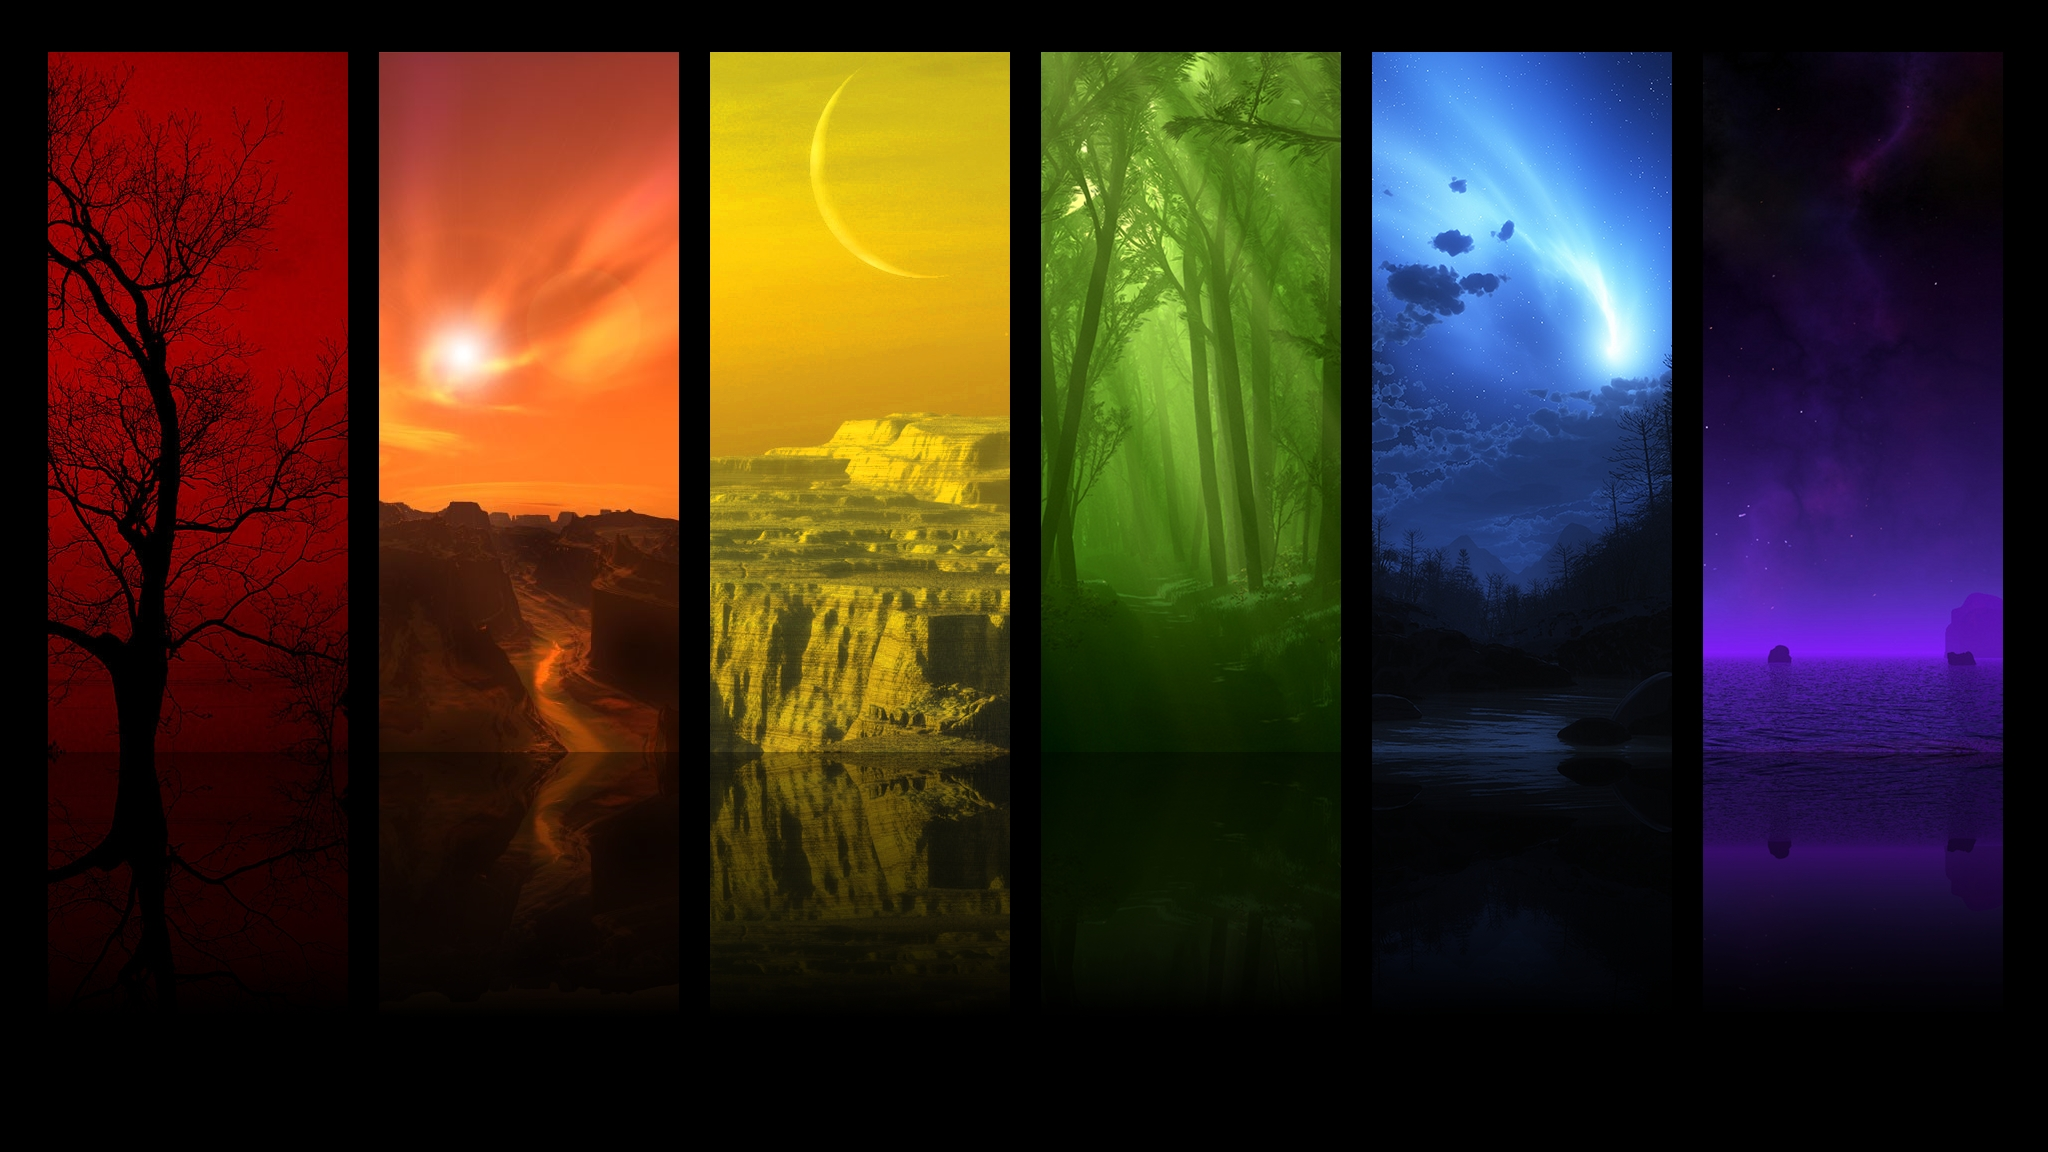 25 Colorful Hd Wallpapers To Light Up Your Display: Productivity Tactics: Applying The Eisenhower Method On